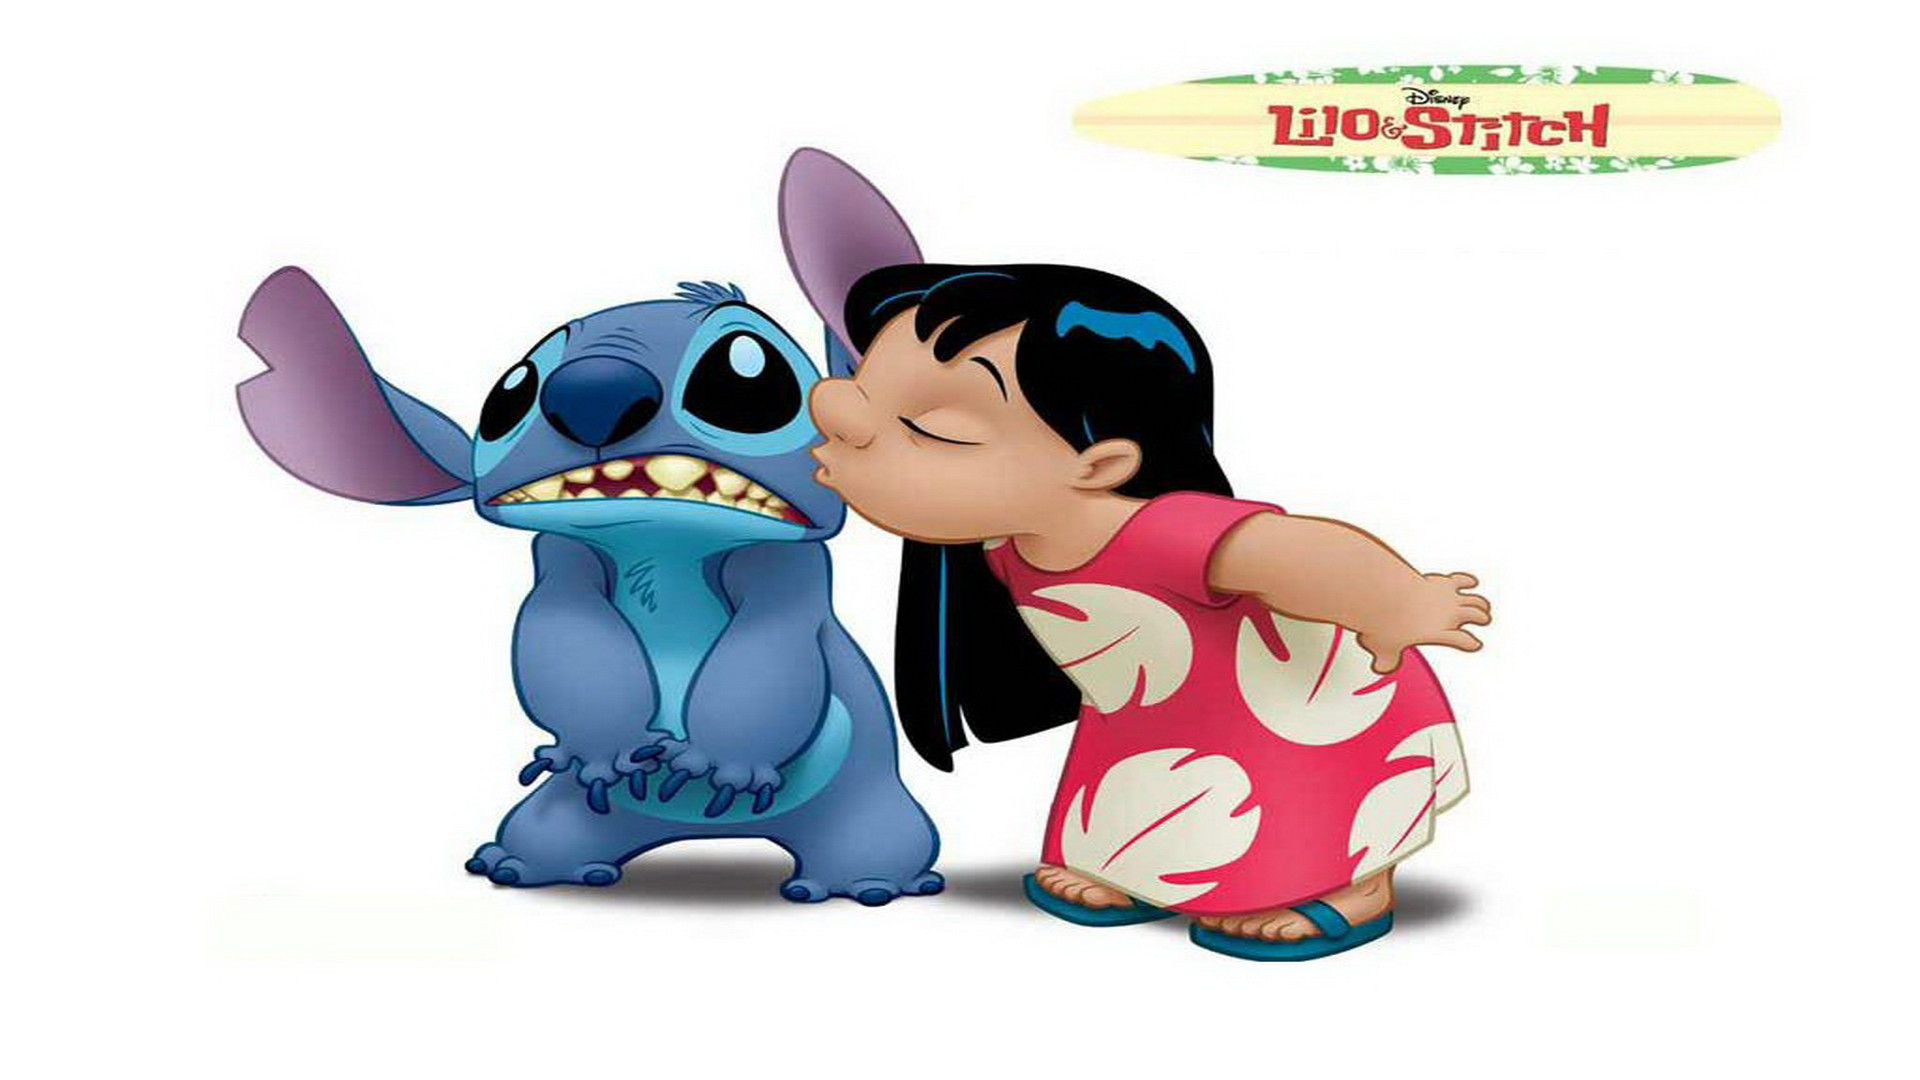 1920x1080 Wallpaper New Year Christmas Gift Stich